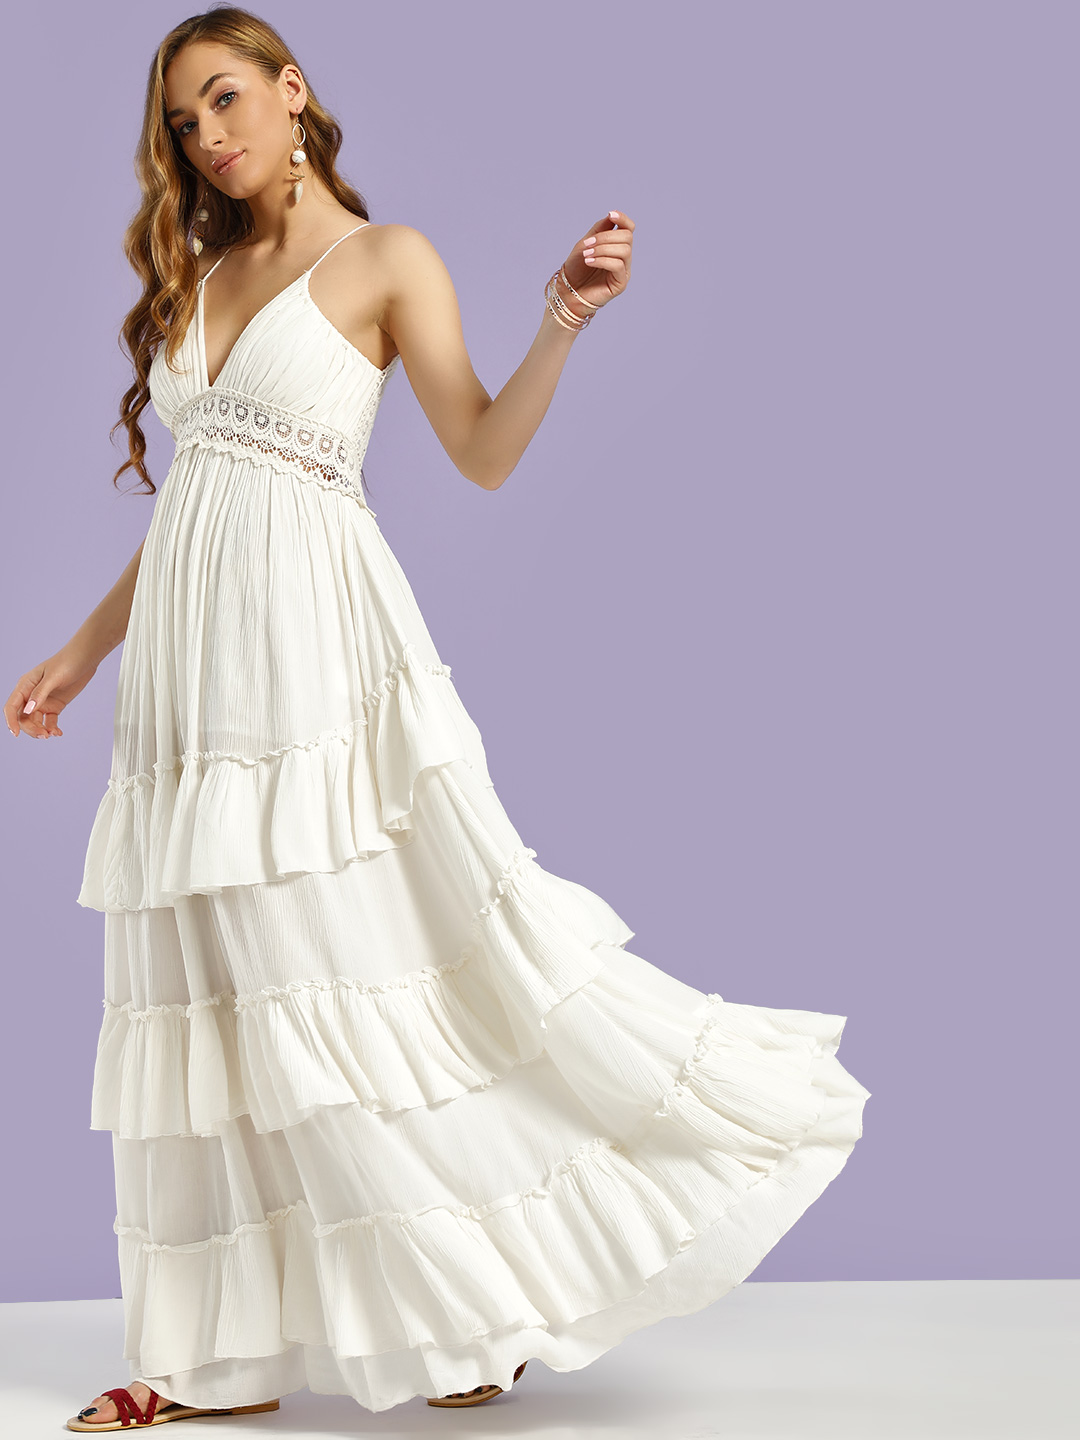 KOOVS White Lace Backless Tiered Maxi Dress 1